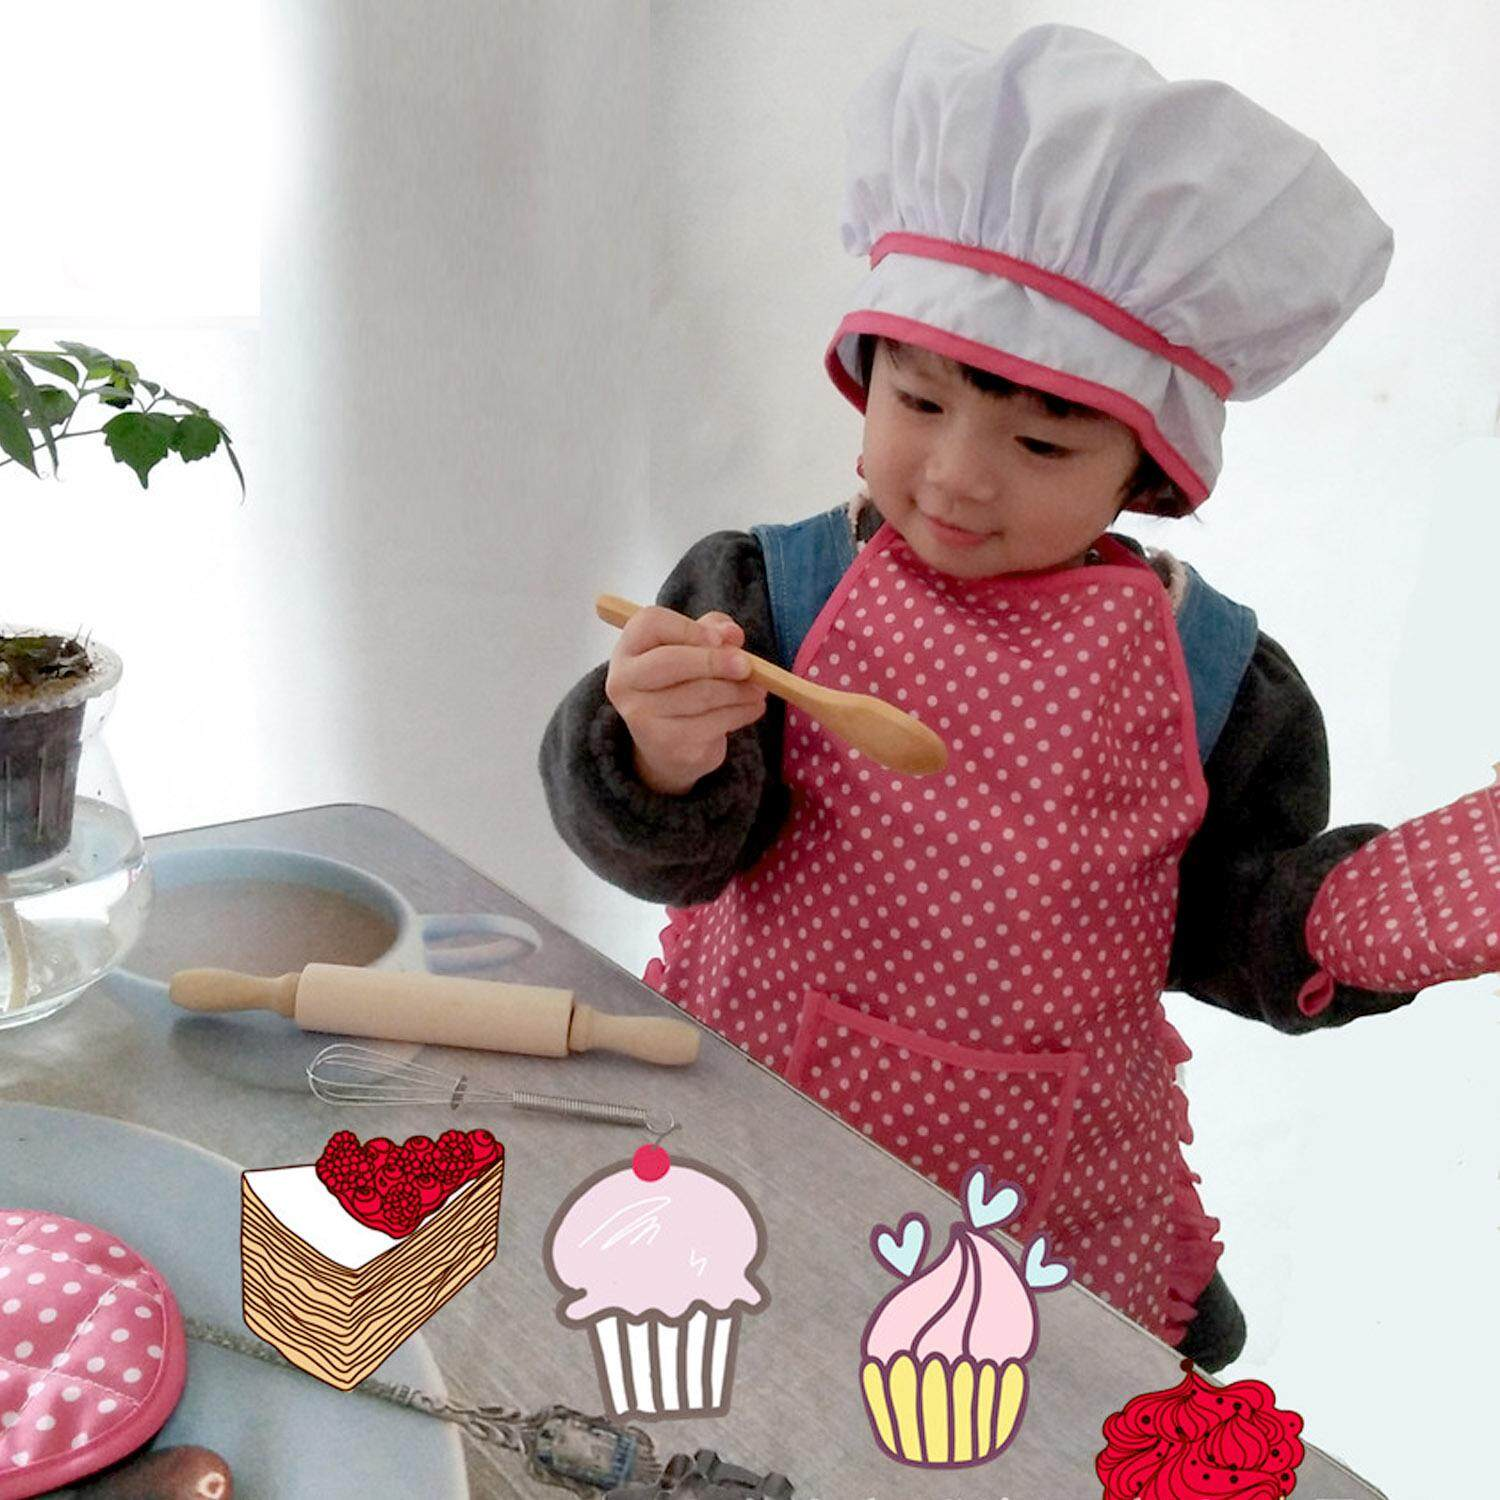 11 Pcs Kids Chef Cooking Play Diy Pretend Play Set Including Chef Hat Apron Gloves Cookies Cutters Gifts For Birthday Children Day - Intl By Stoneky.